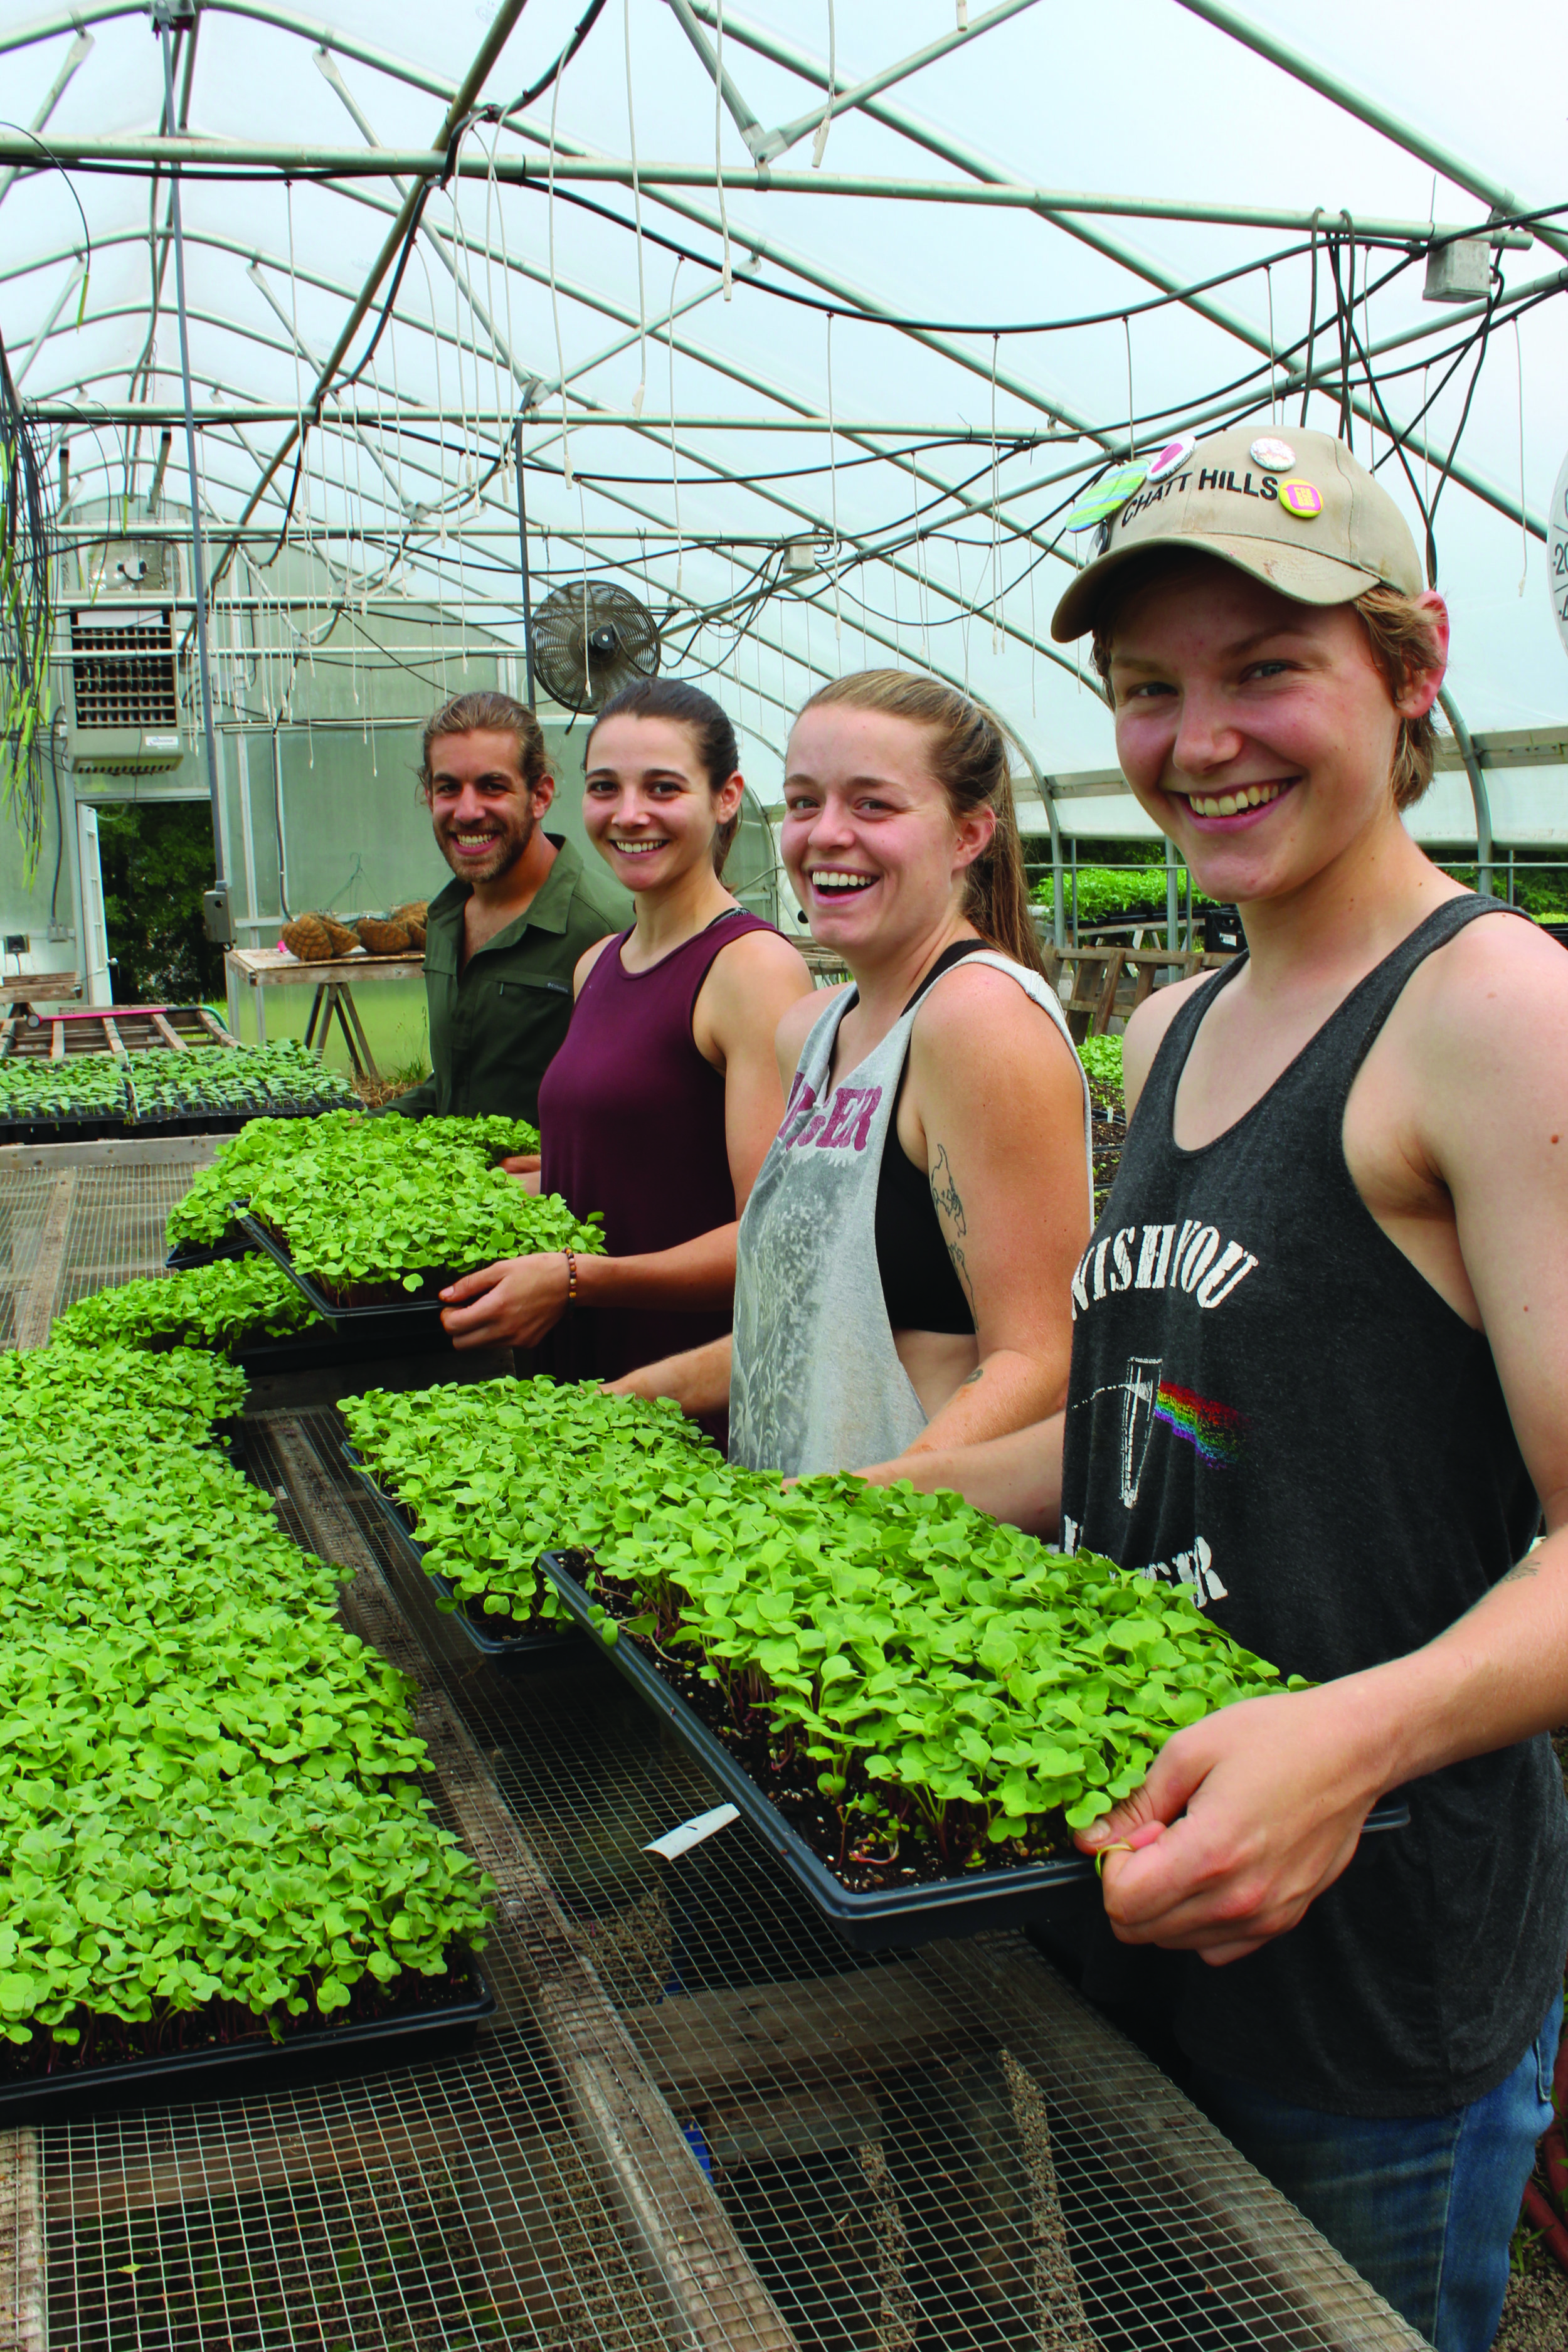 The 2018 Farm Apprentice group prepares plants for the annual Plant Sale.